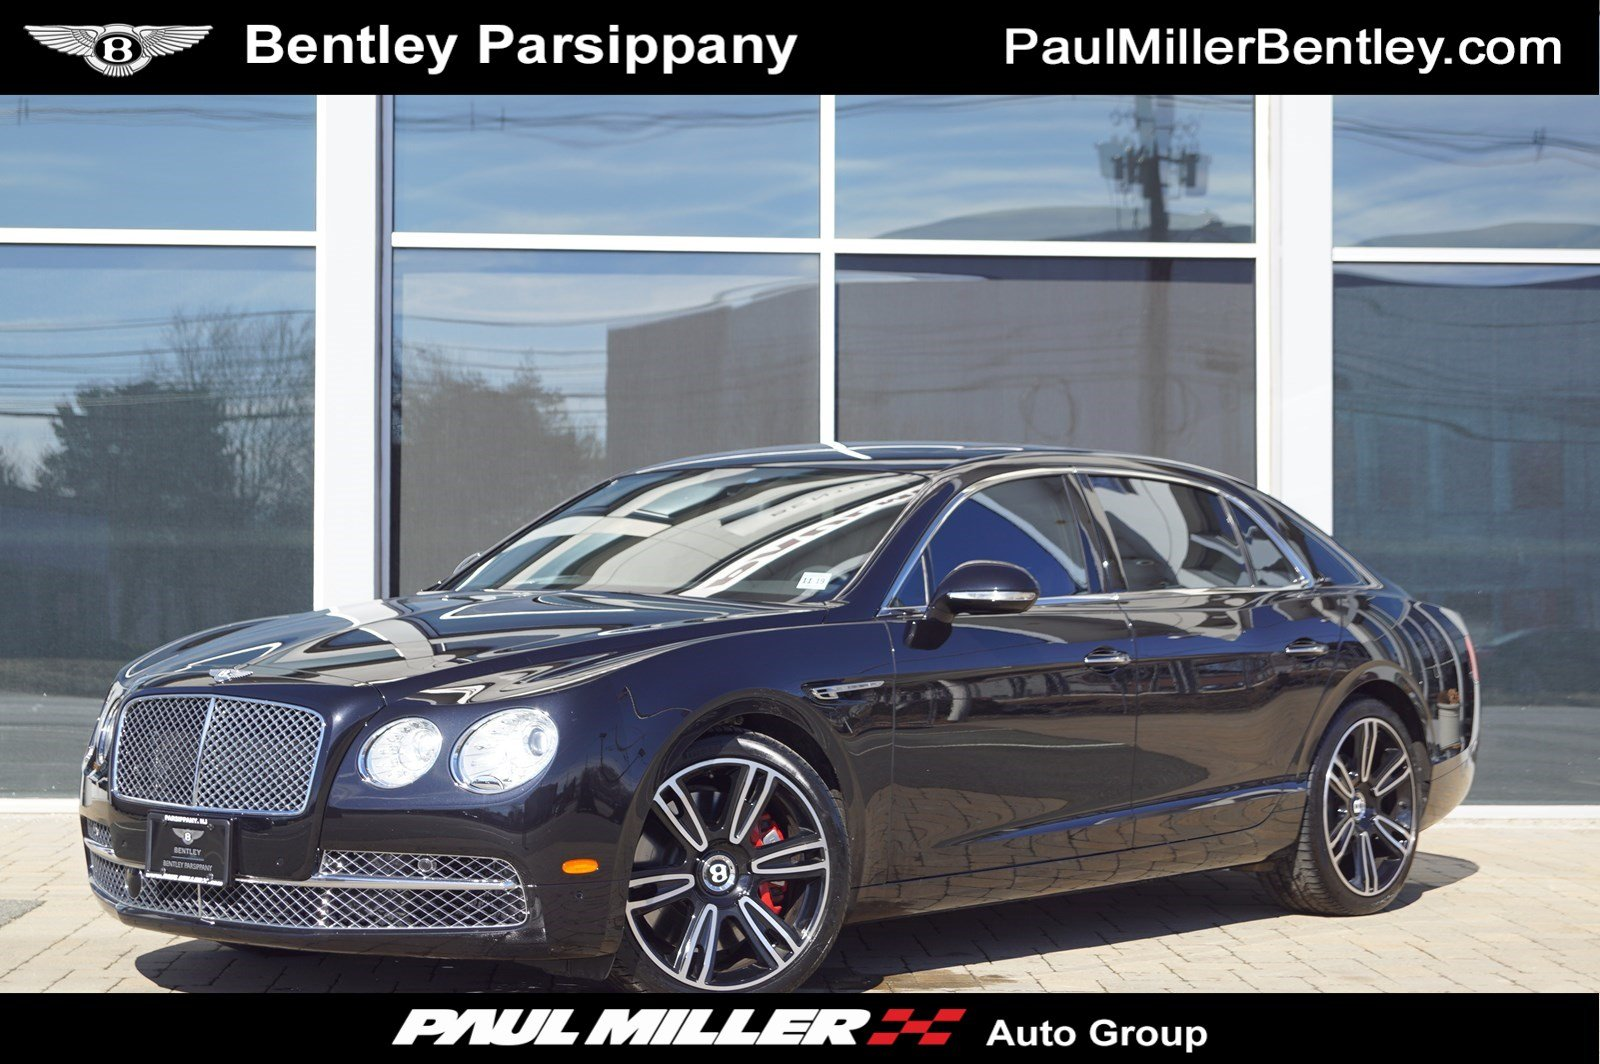 pre-owned 2014 bentley flying spur 4dr car in parsippany #5966